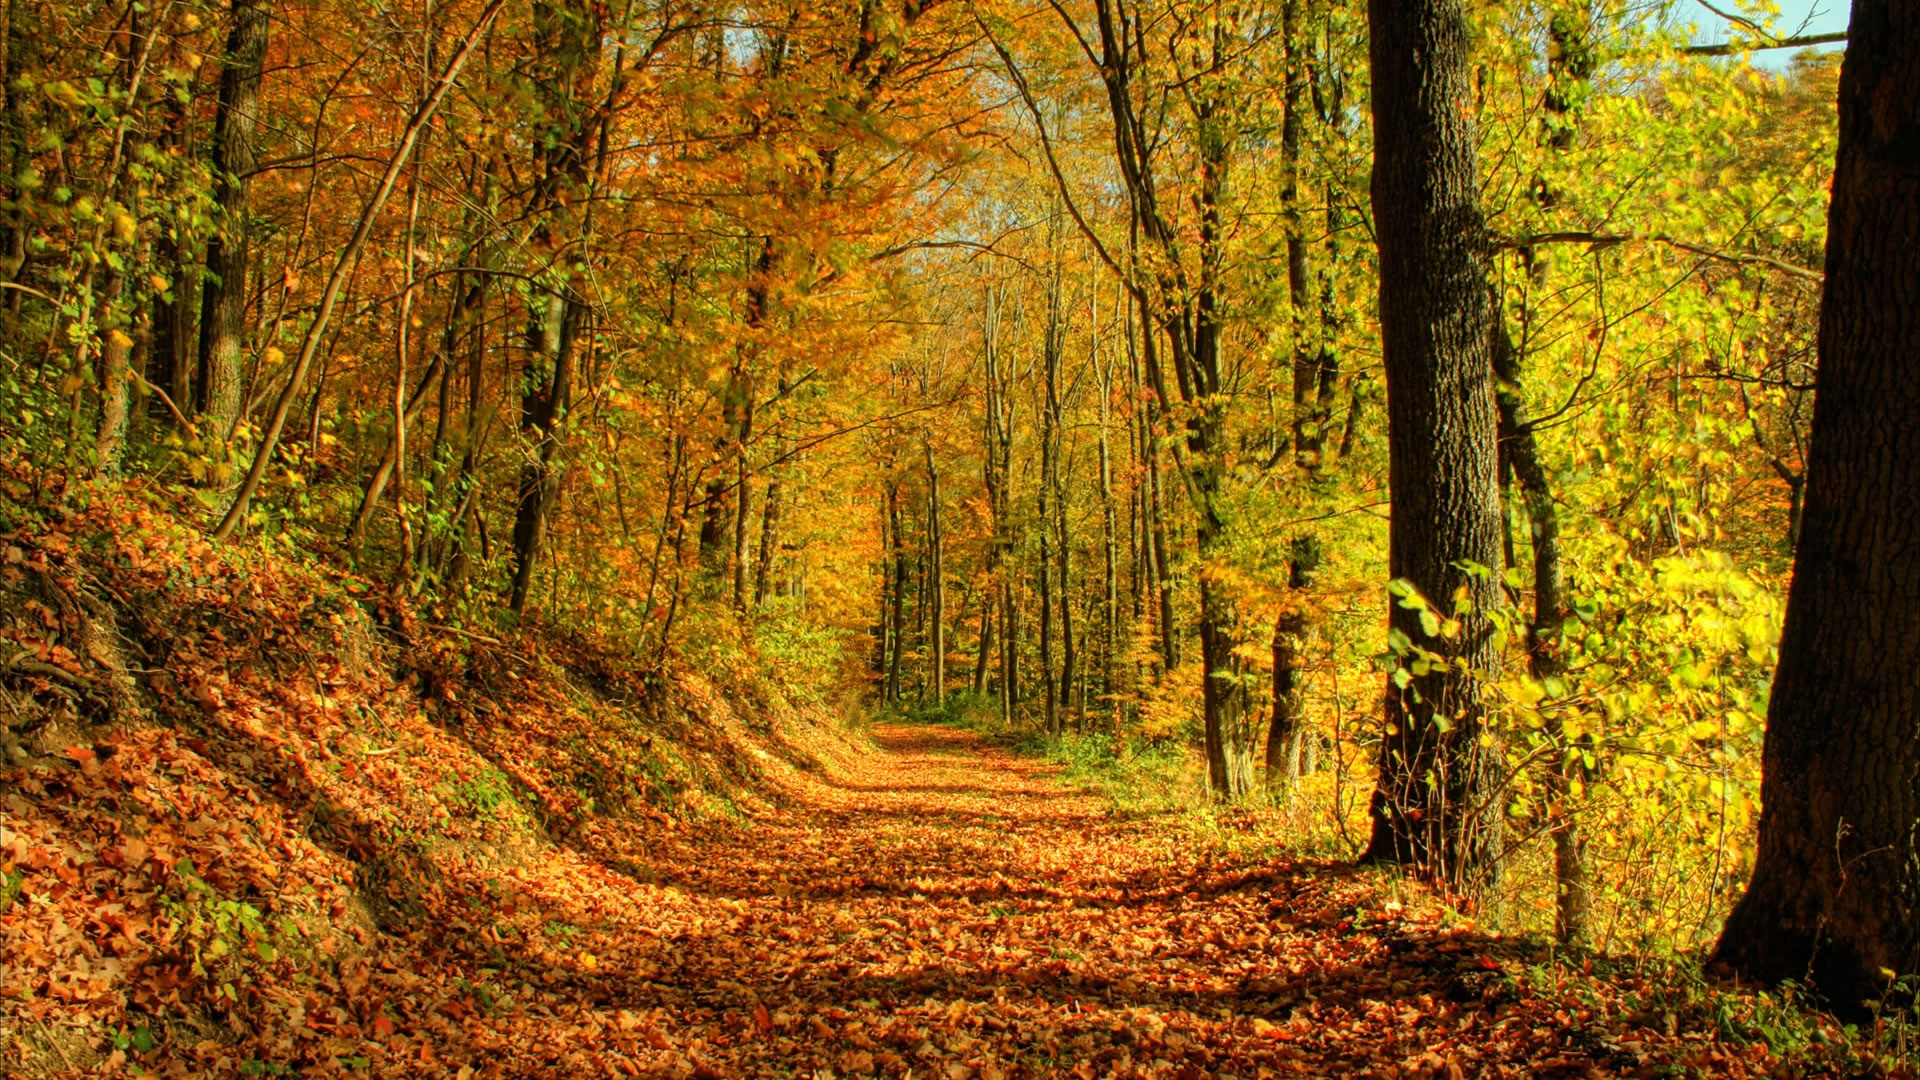 autumns-finest-moments-autumn-beautiful-colours-forest-leaves-nature-path-trail-trees-hd-wallpaper.jpg